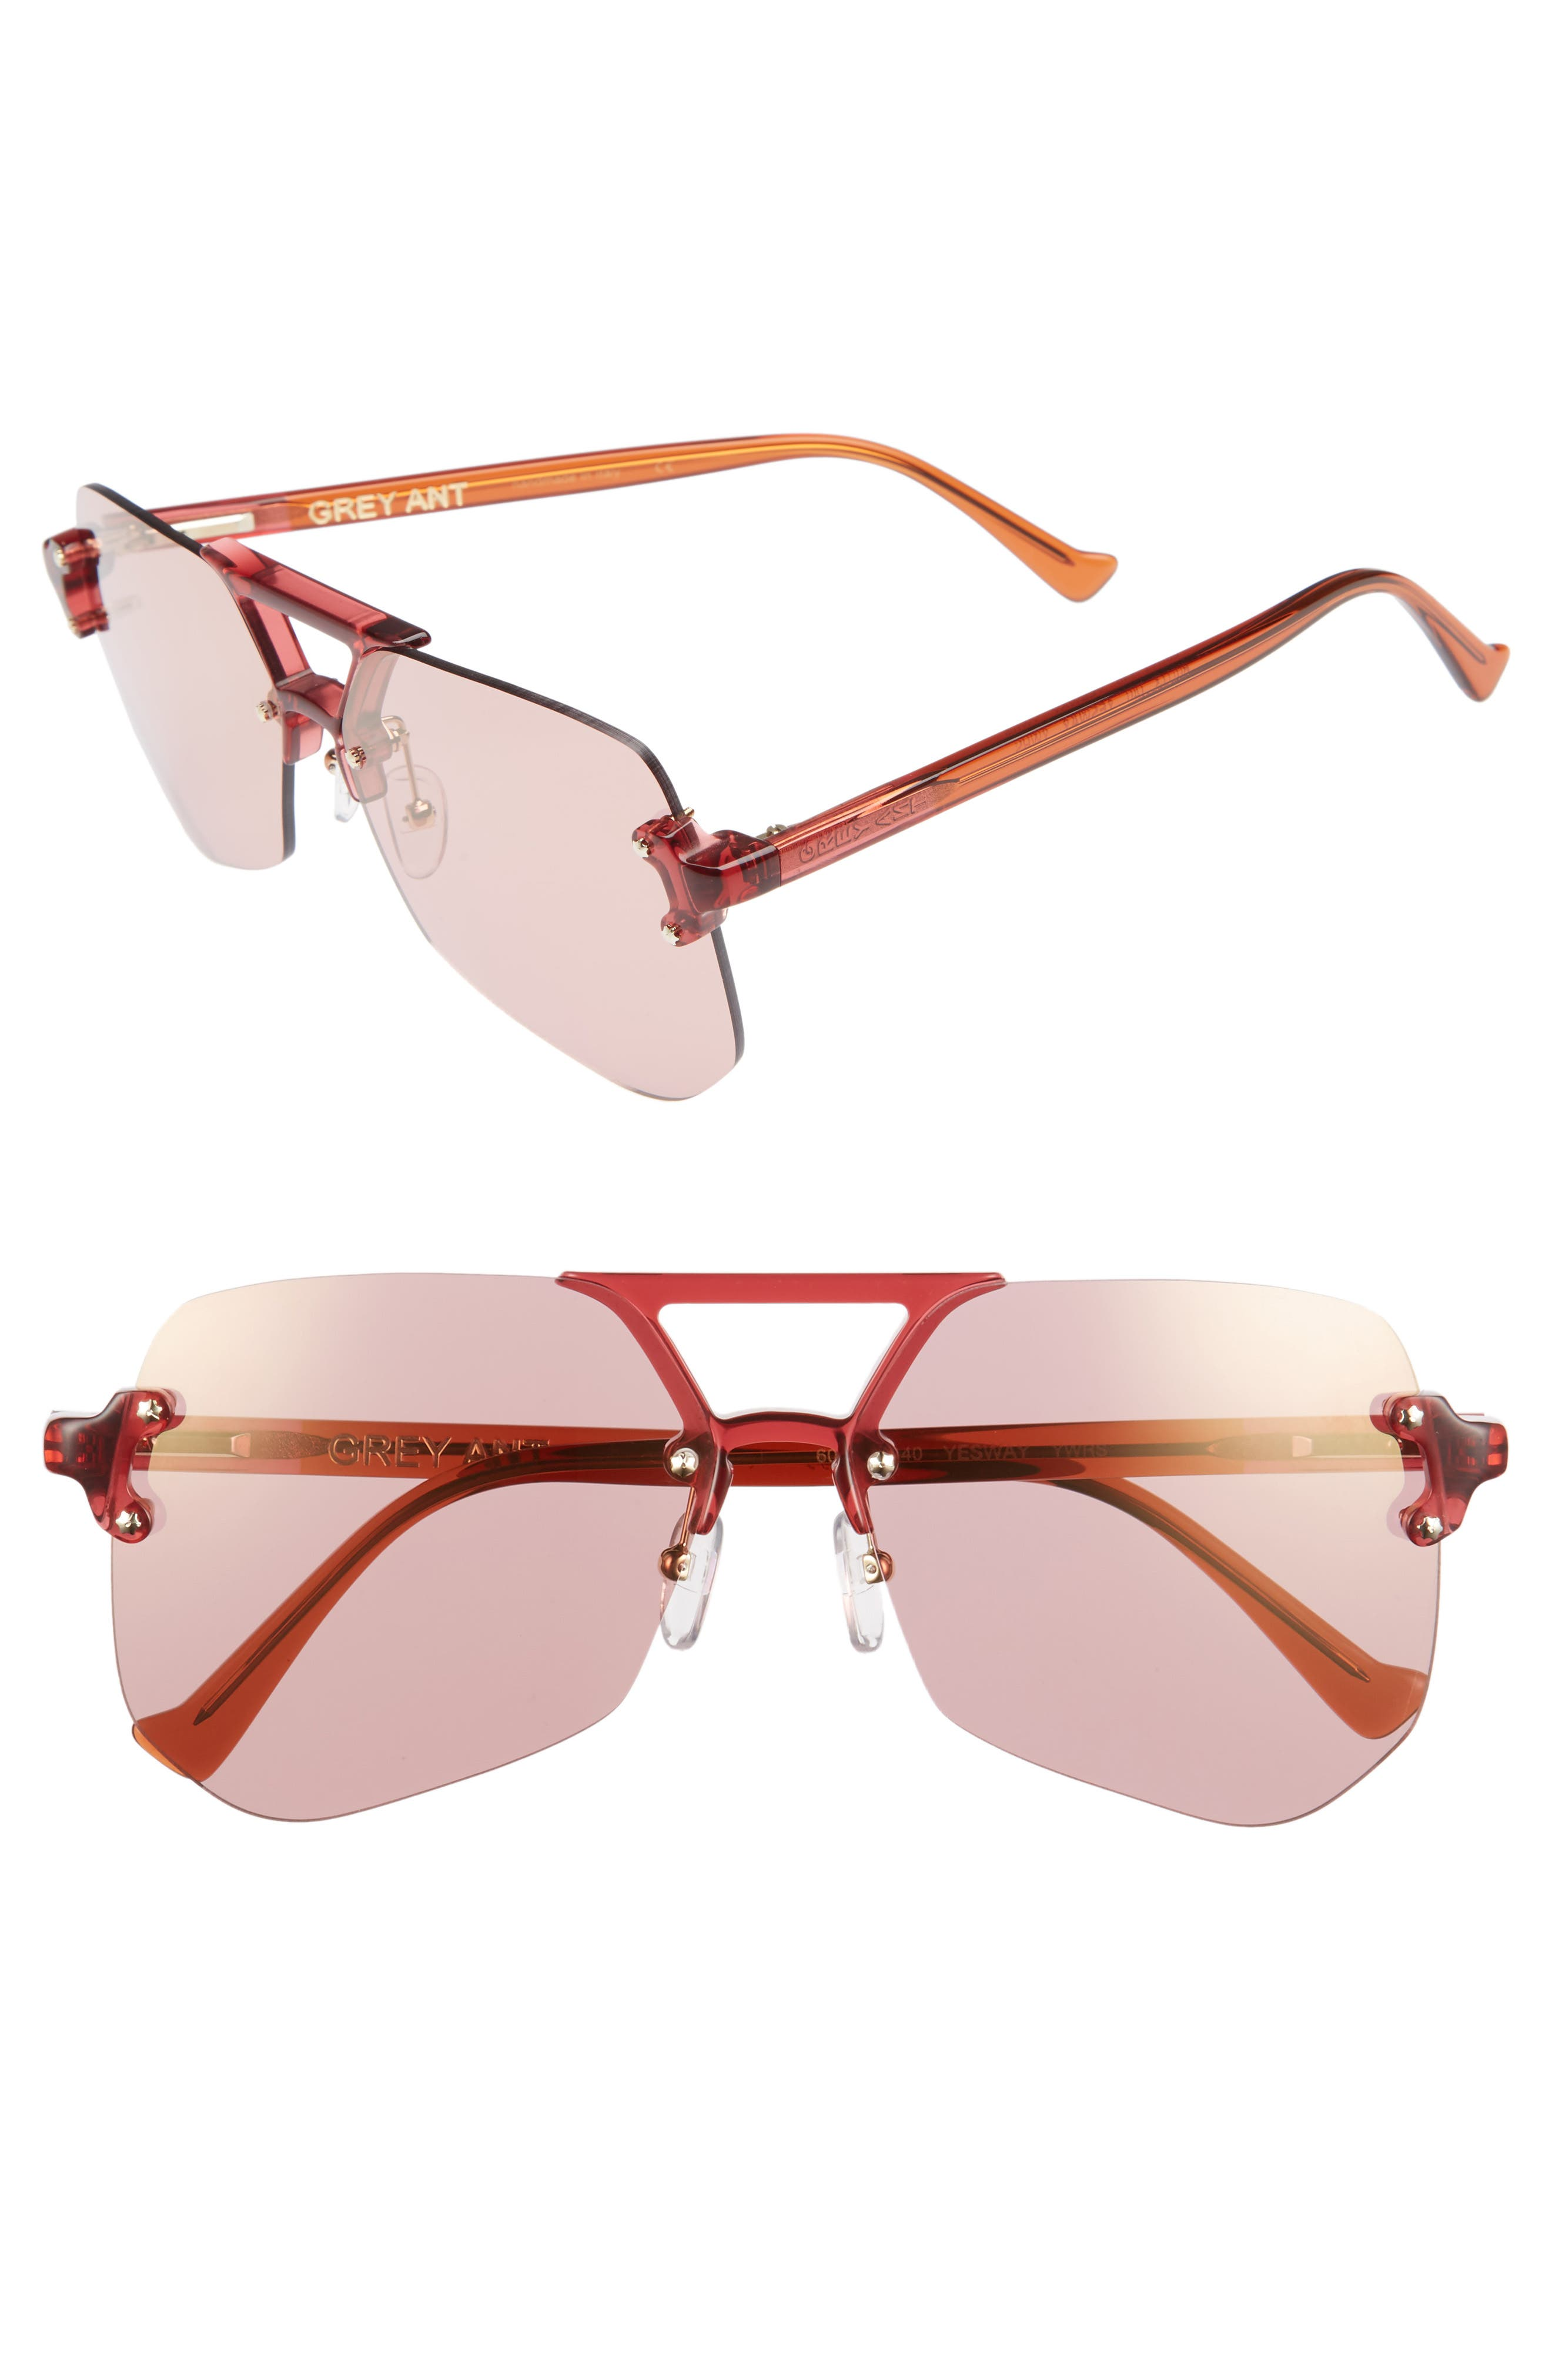 Yesway 60mm Sunglasses,                             Main thumbnail 1, color,                             Rose Lens/ Gold Hardware